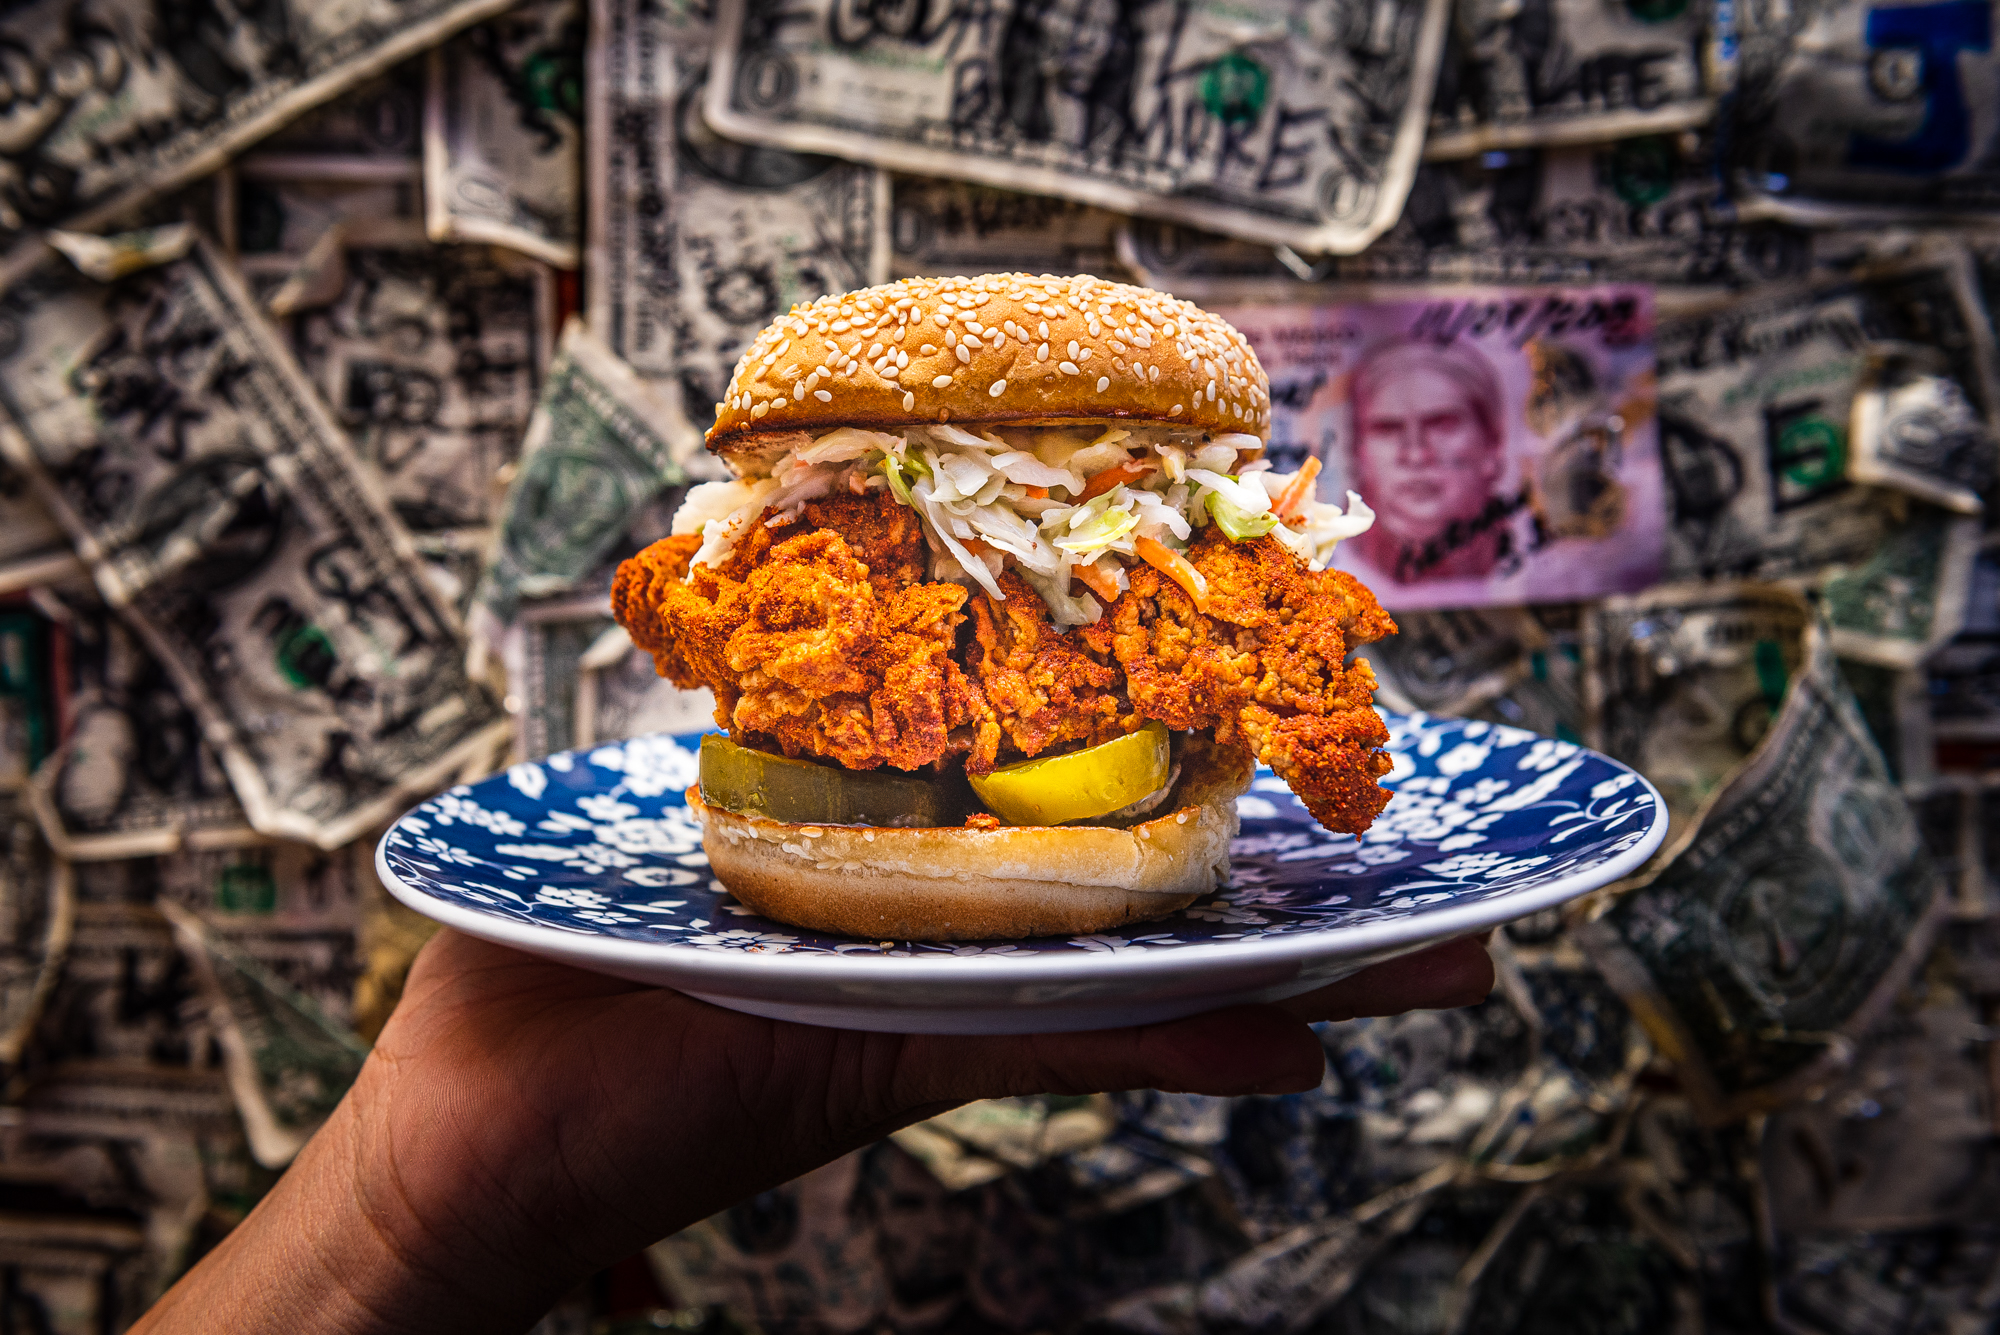 A close-up of the dry hot fried chicken sandwich from Hot Lola's